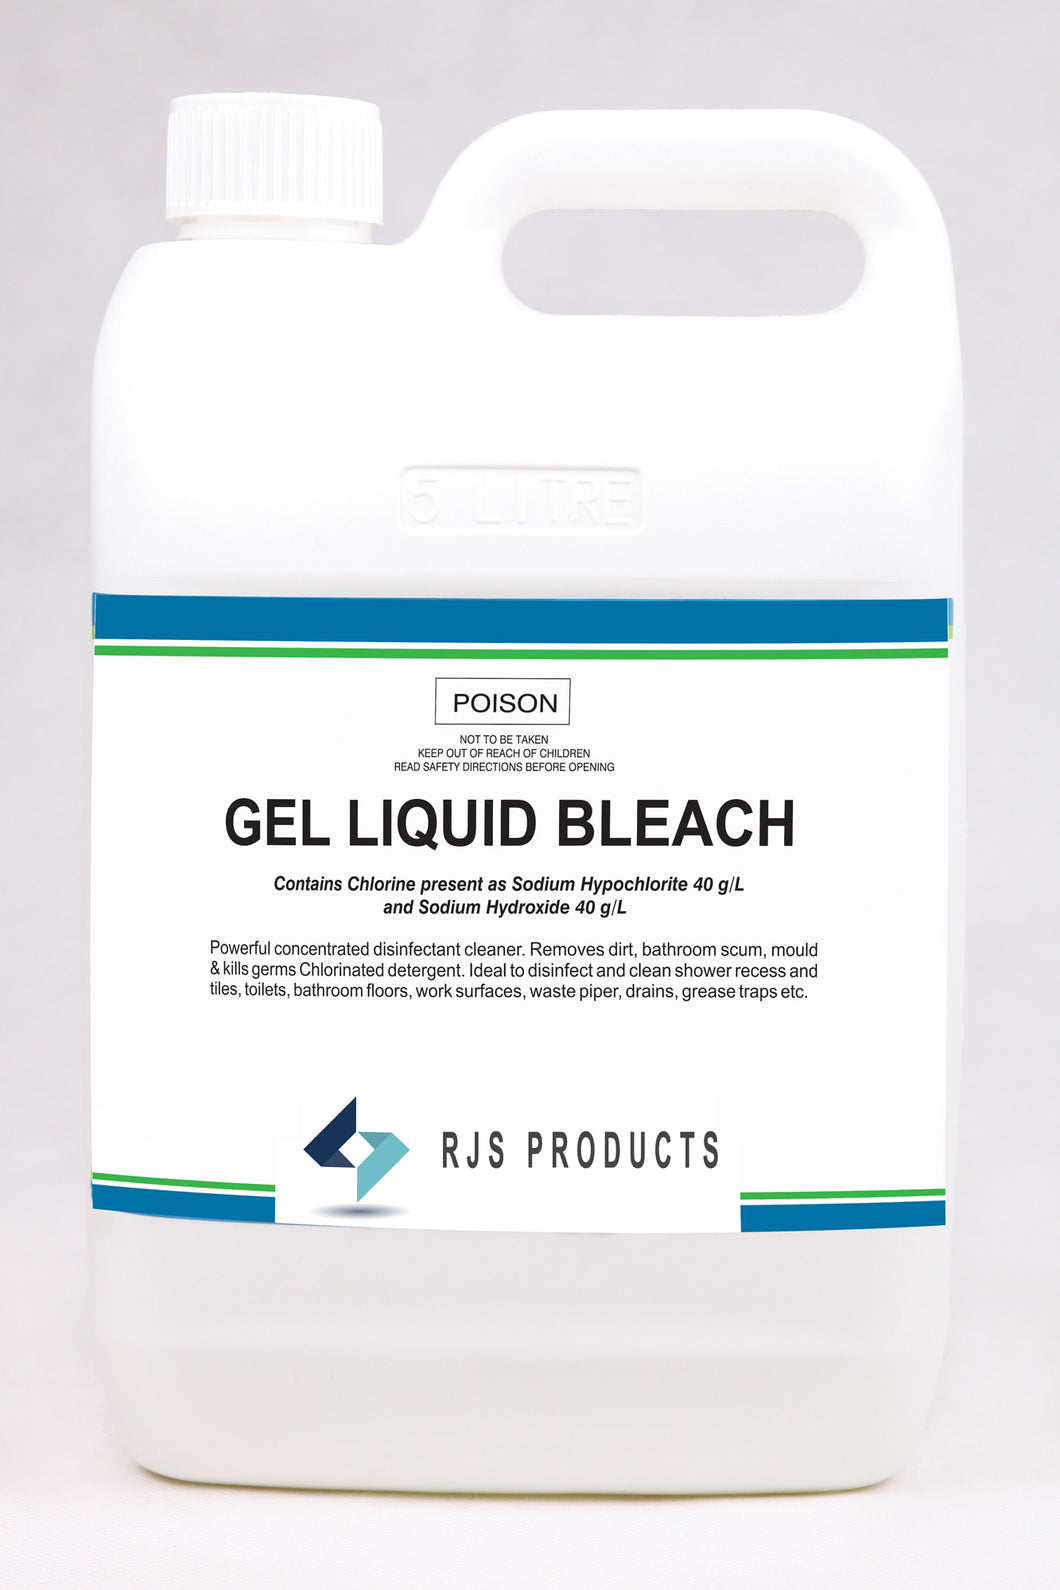 Gel Liquid Bleach